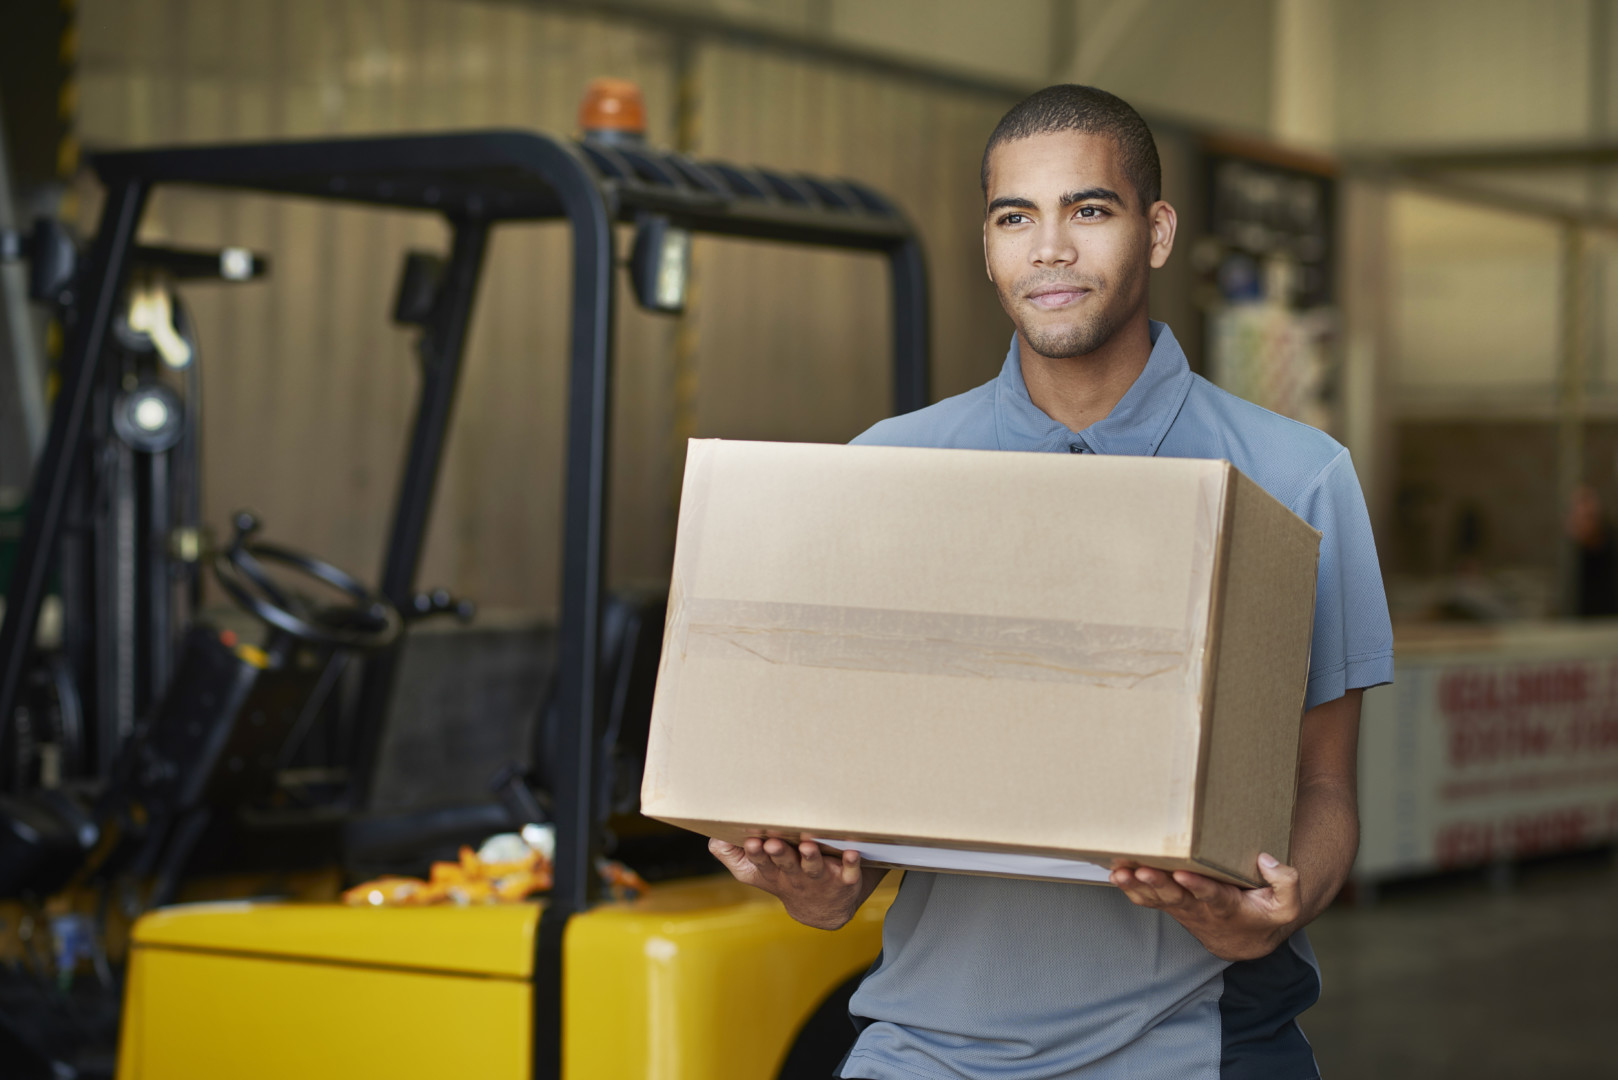 Young delivery man picks up parcels from  a factory. he is wearing industrial workwear and carrying a box on it. In the background an industrial unit can be seen with a forklift truck.